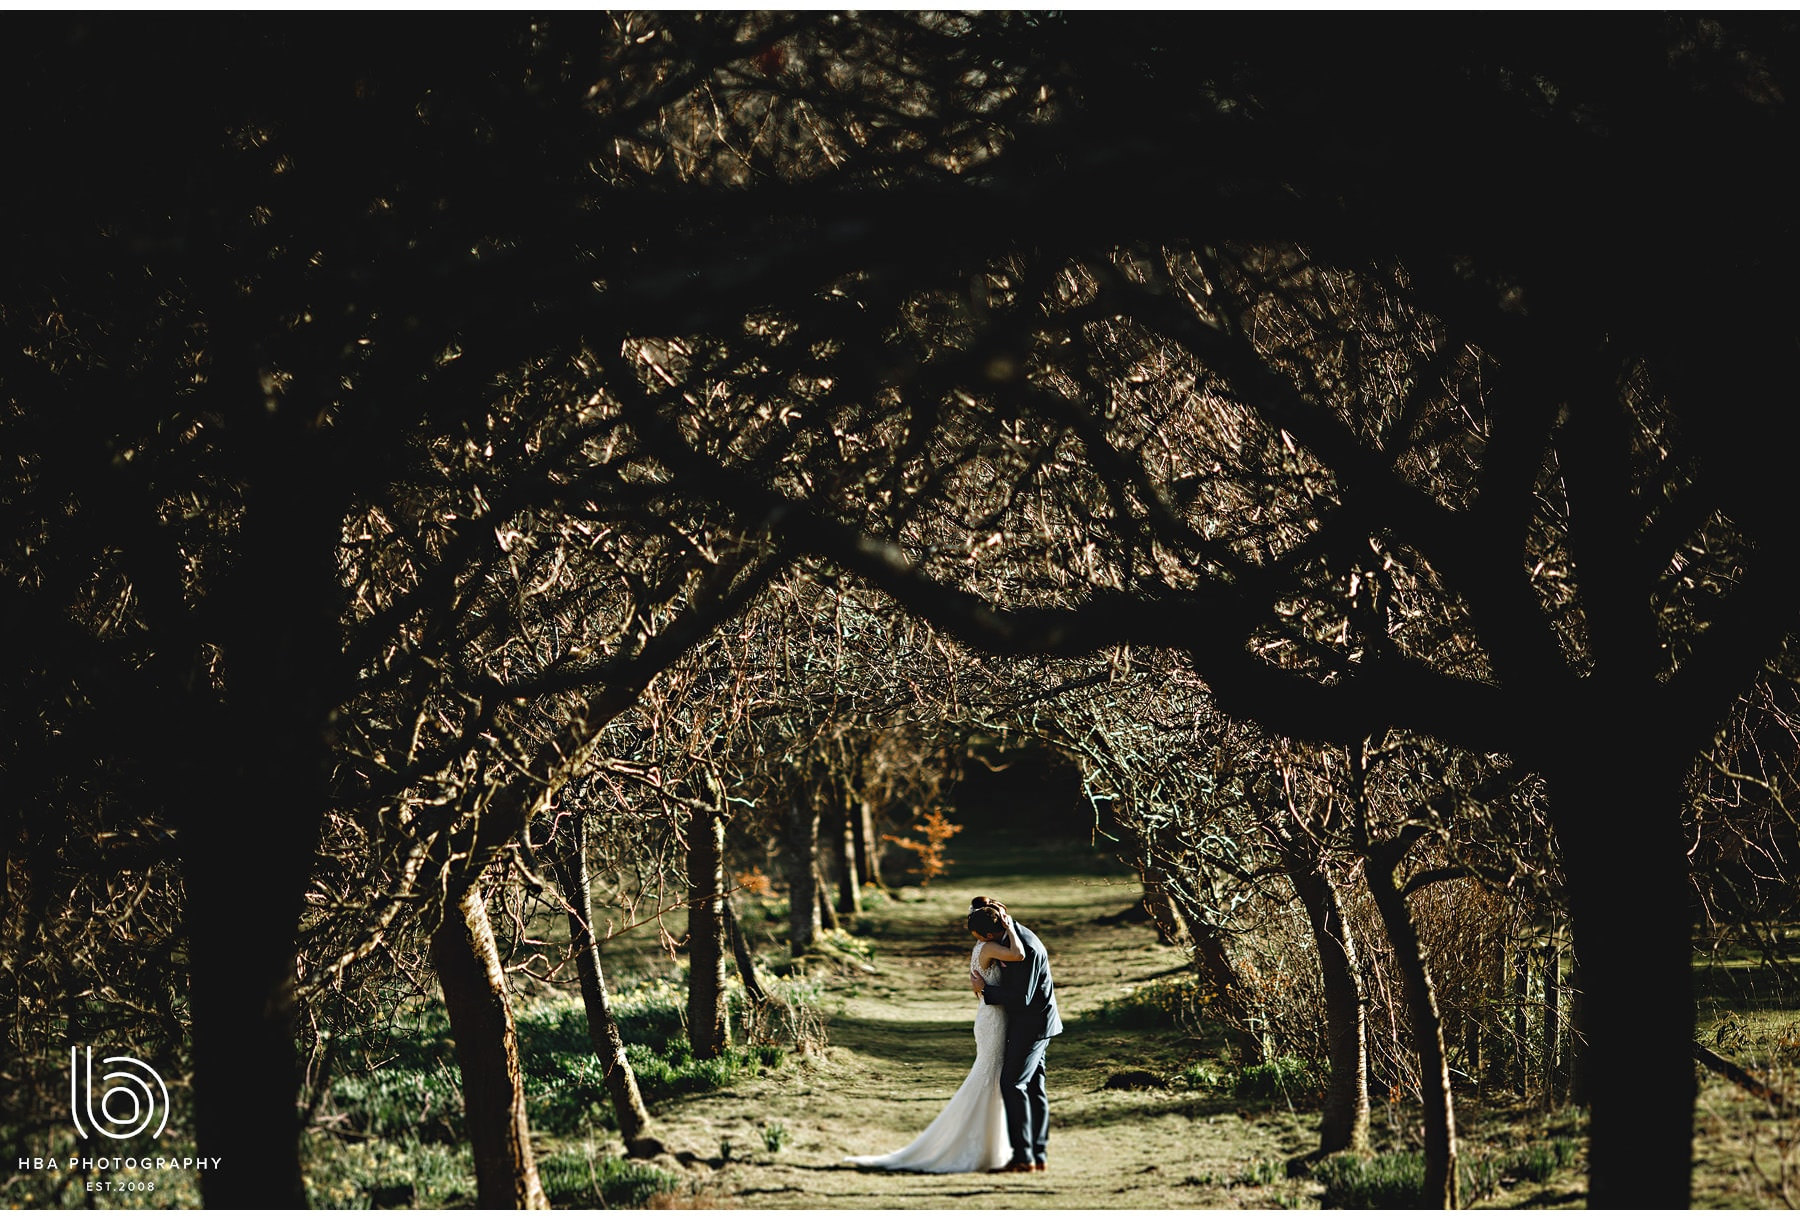 the bride & groom in an avenue of trees